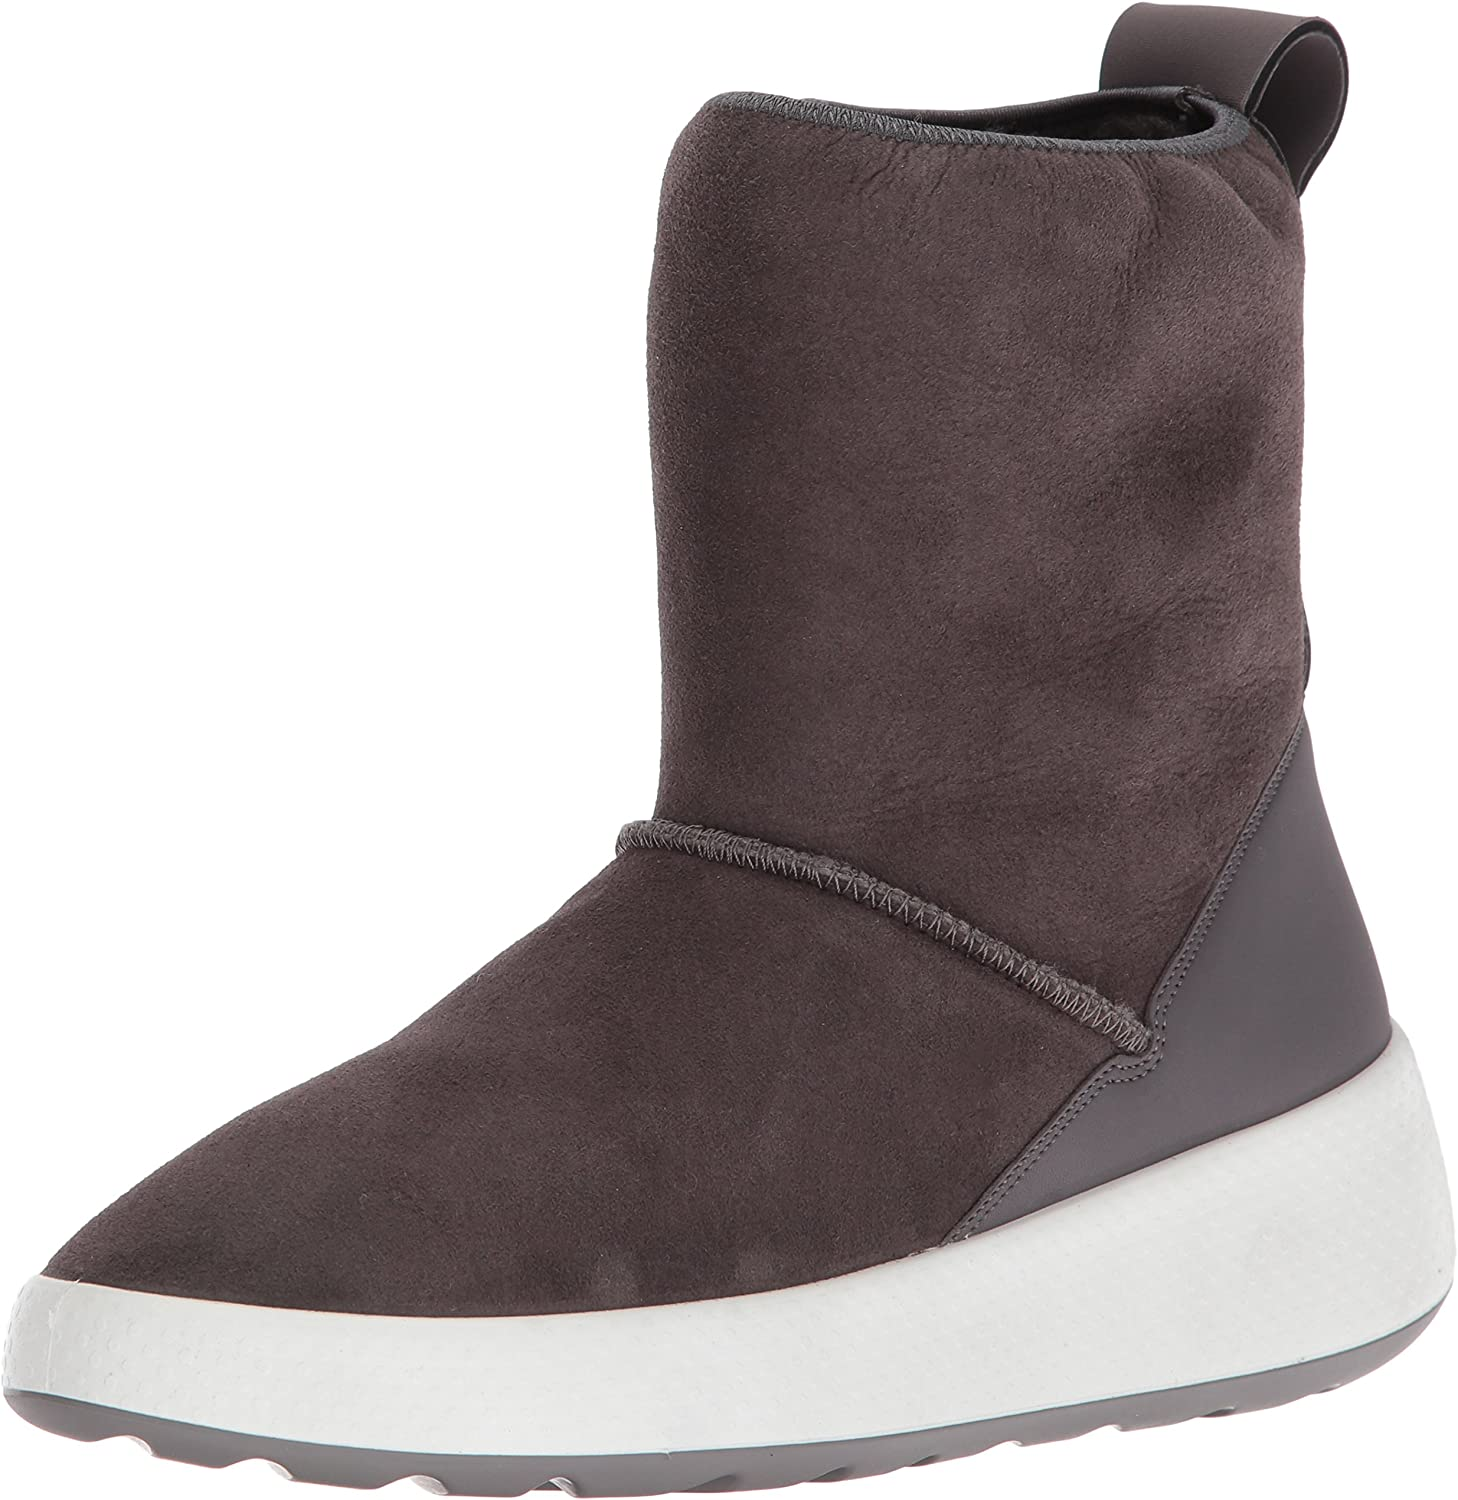 ECCO shoes Women's Ukiuk Mid Fashion Boots